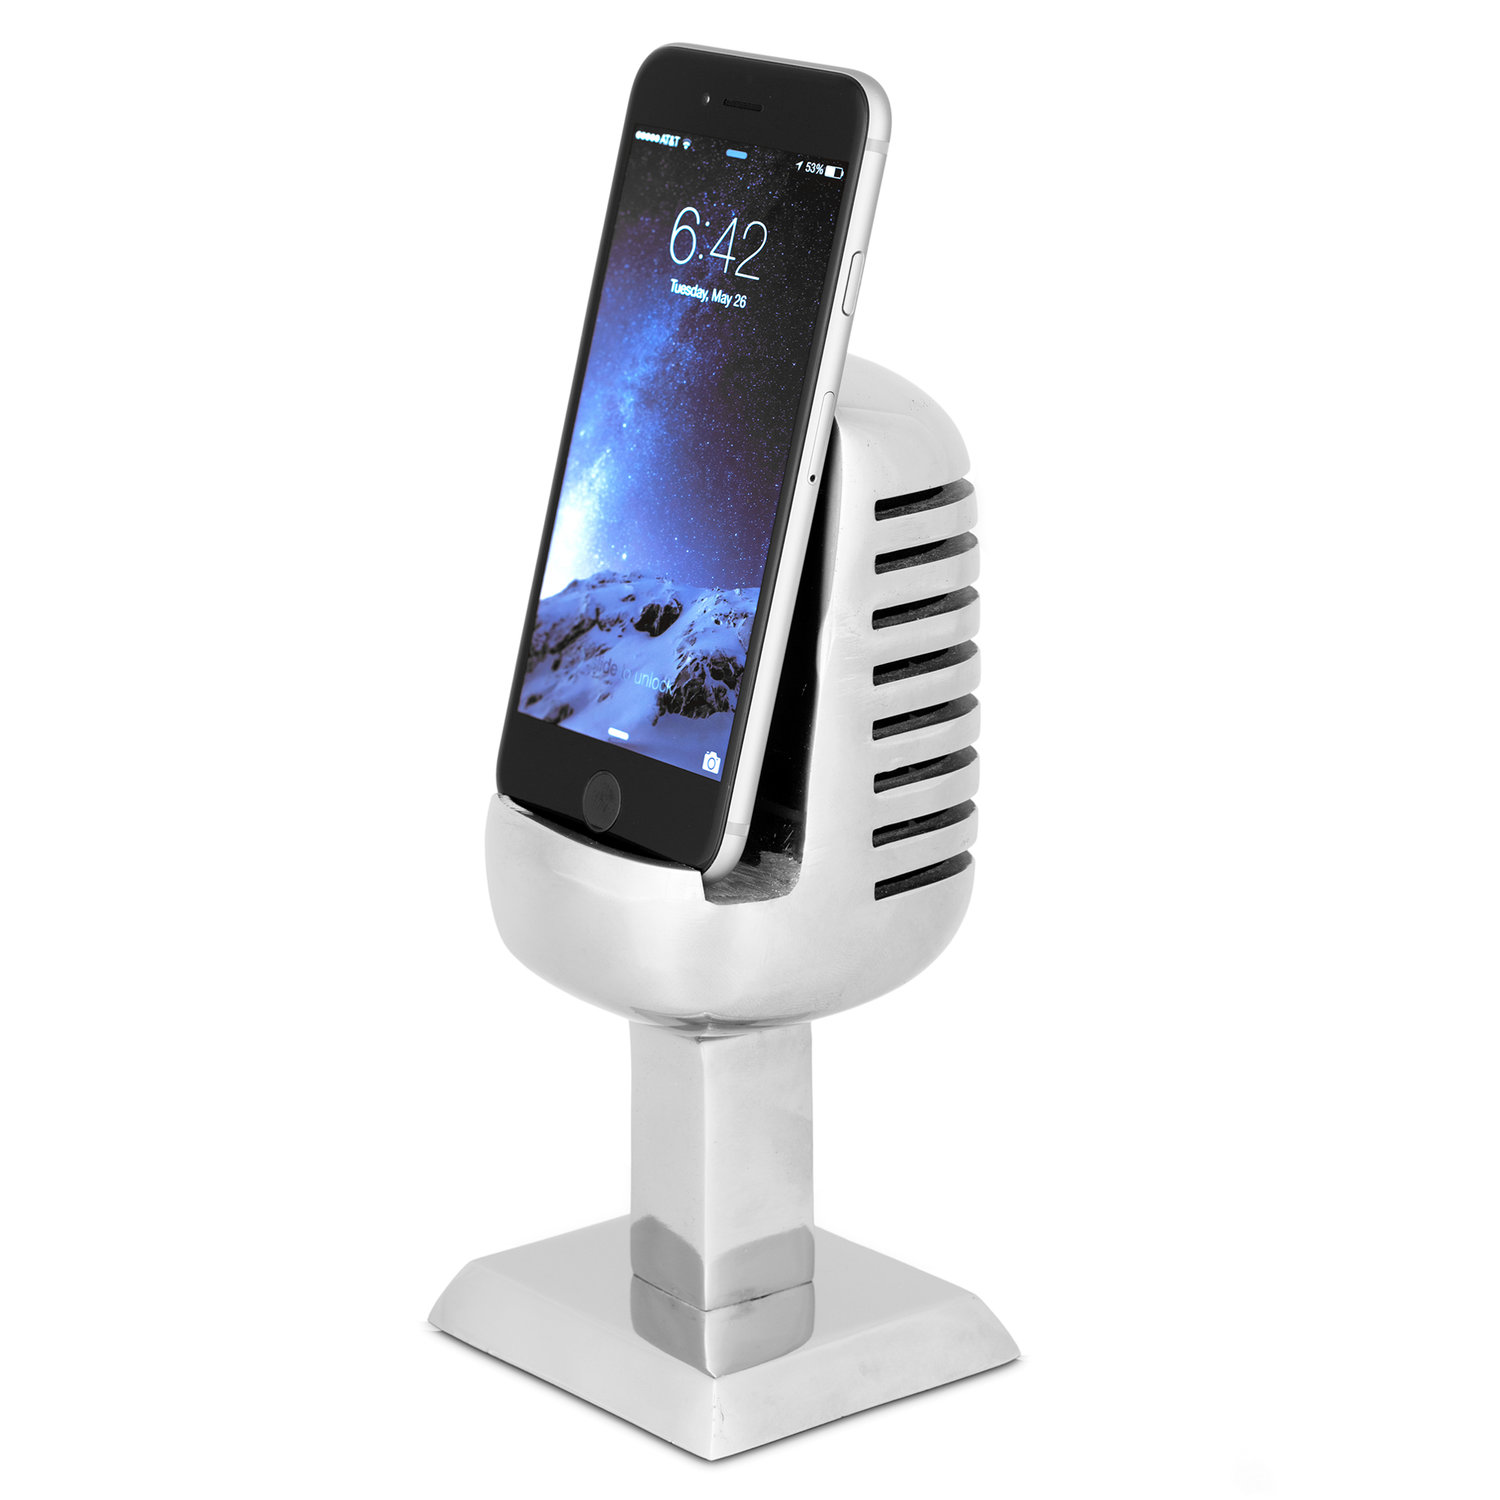 microphone_stand_side-charger+(1).jpg